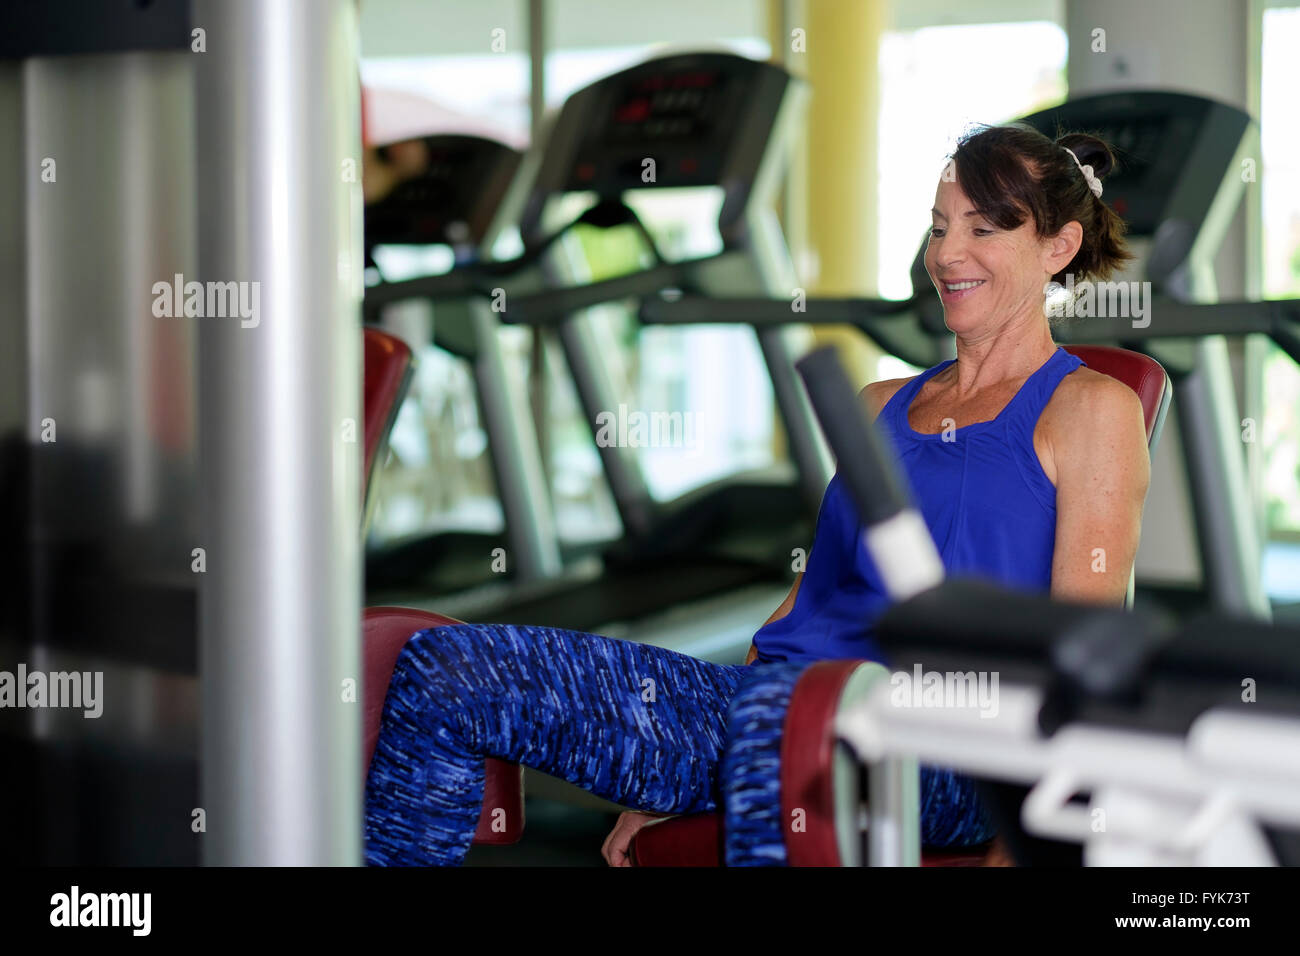 Workout exercise of a senior citizen woman at the gym - Stock Image